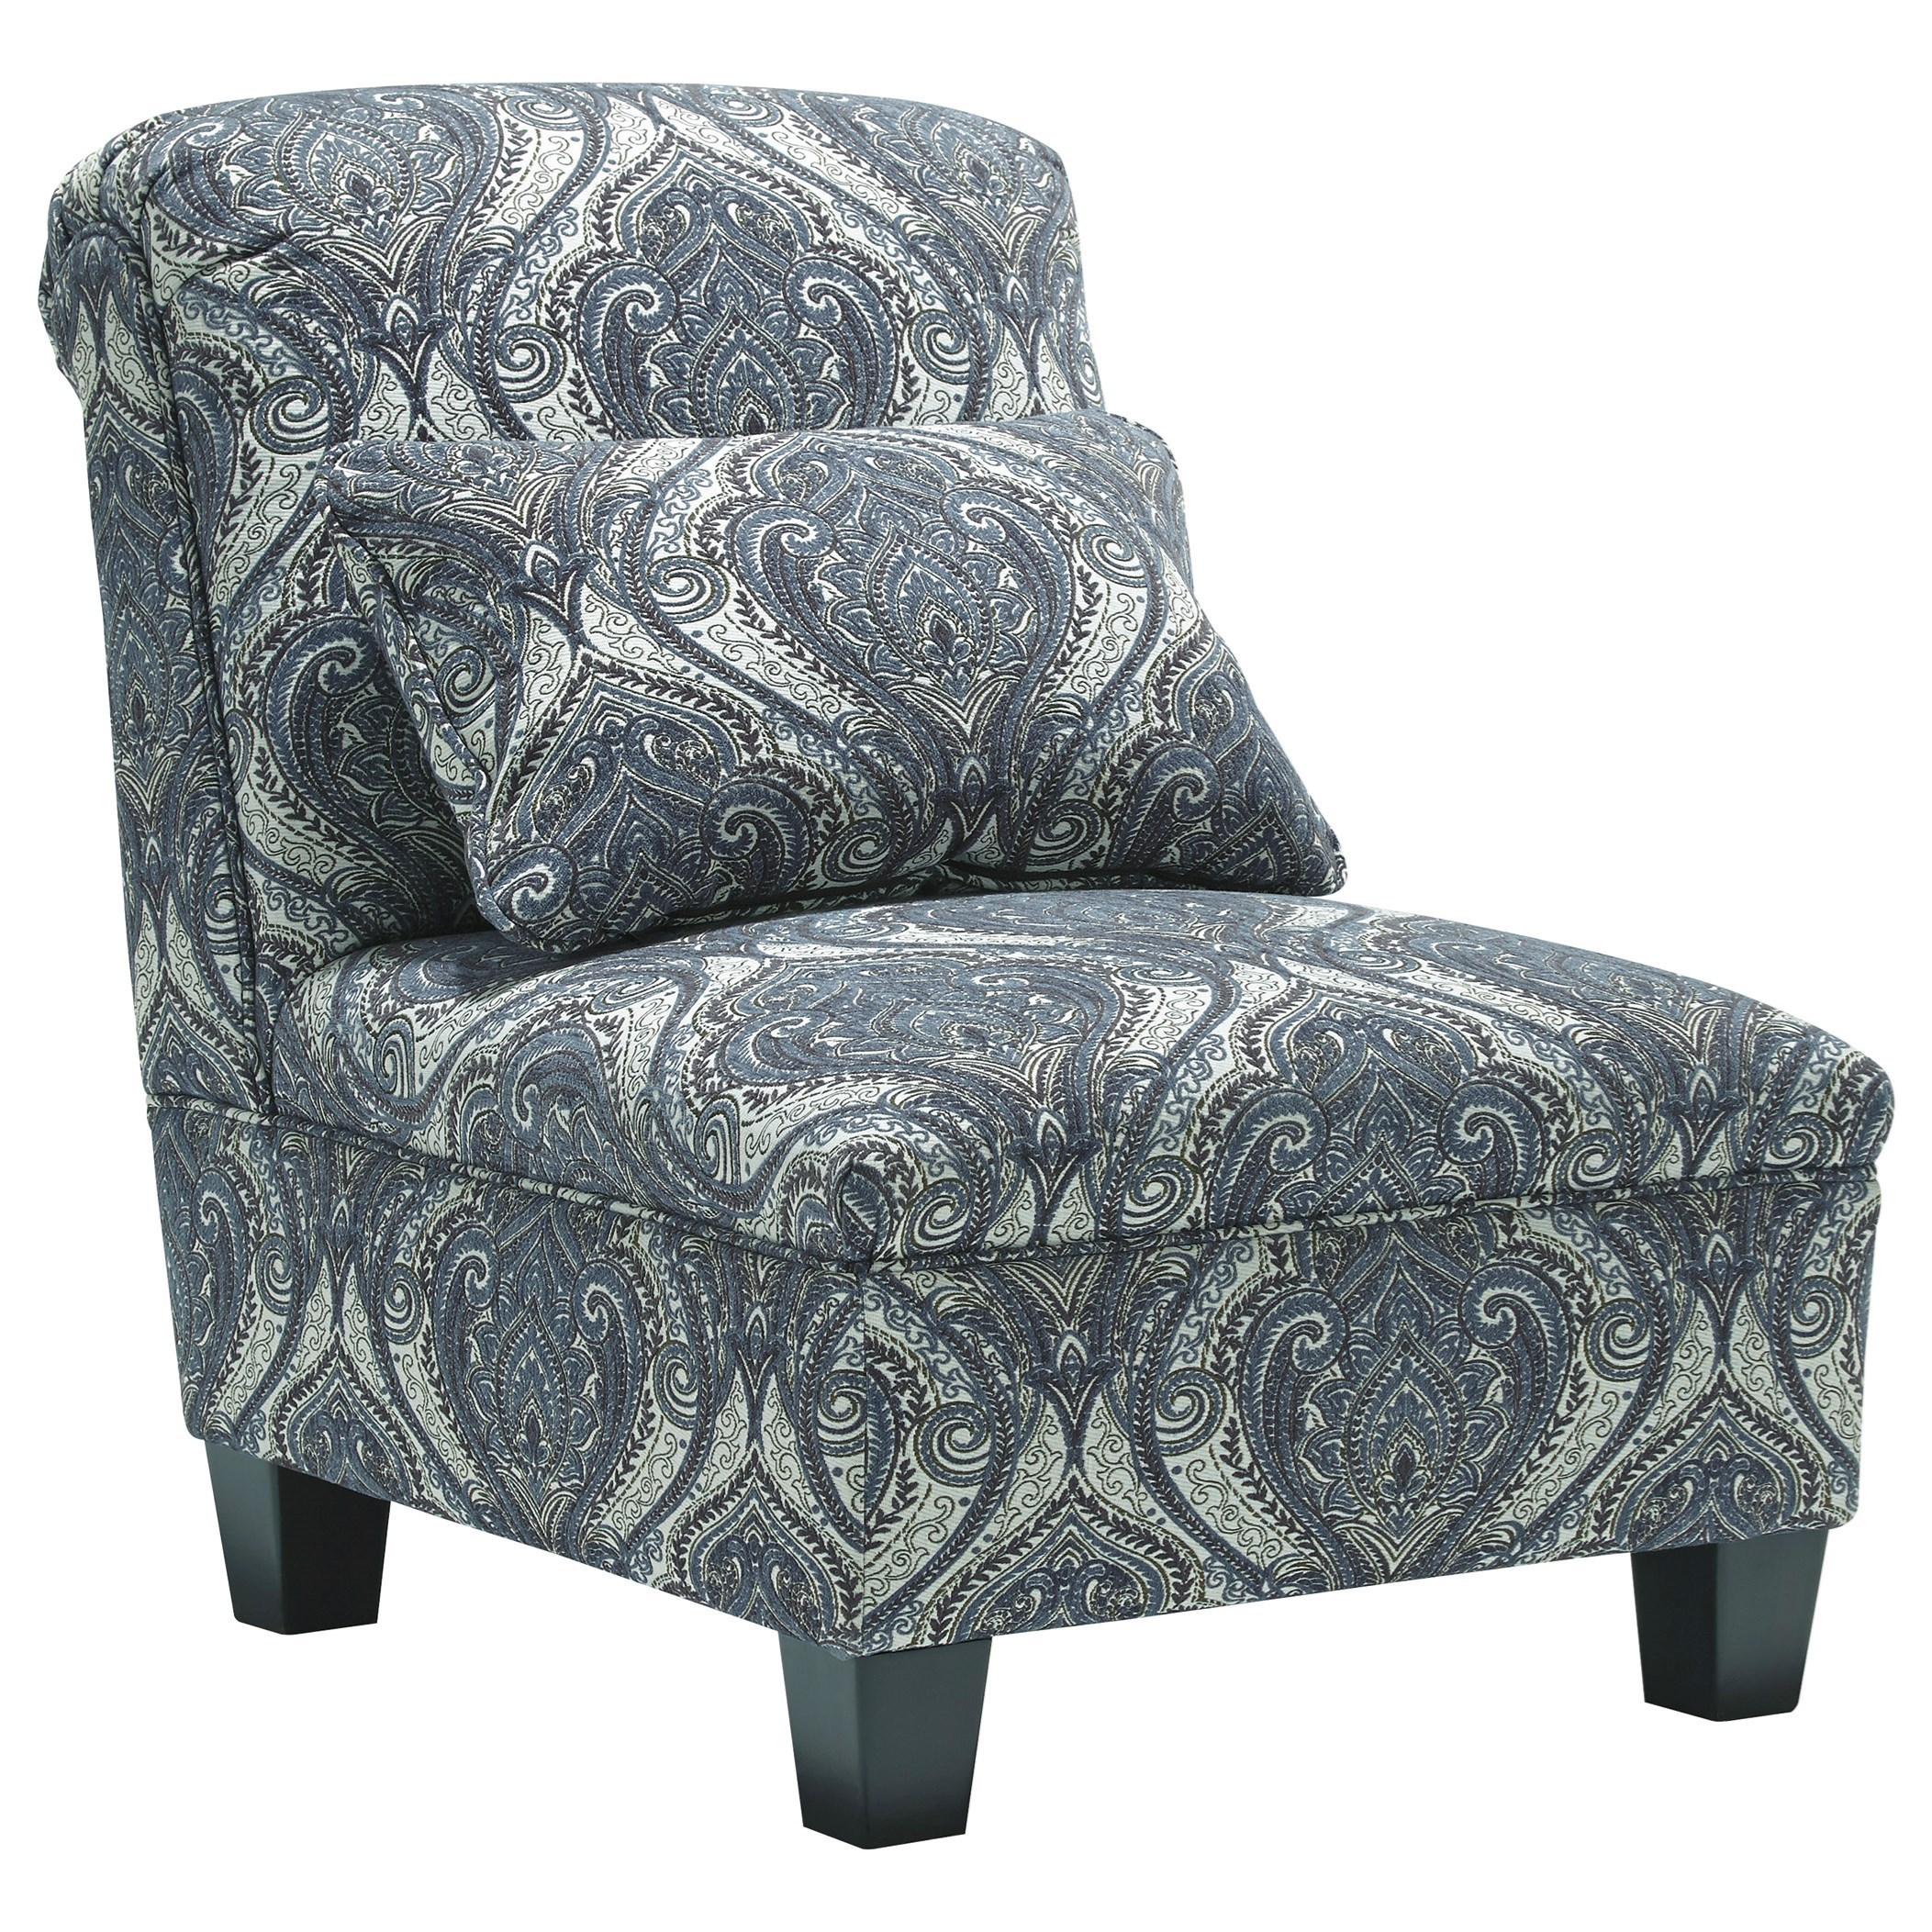 paisley furniture. Armless Chair With Paisley Pattern Furniture R